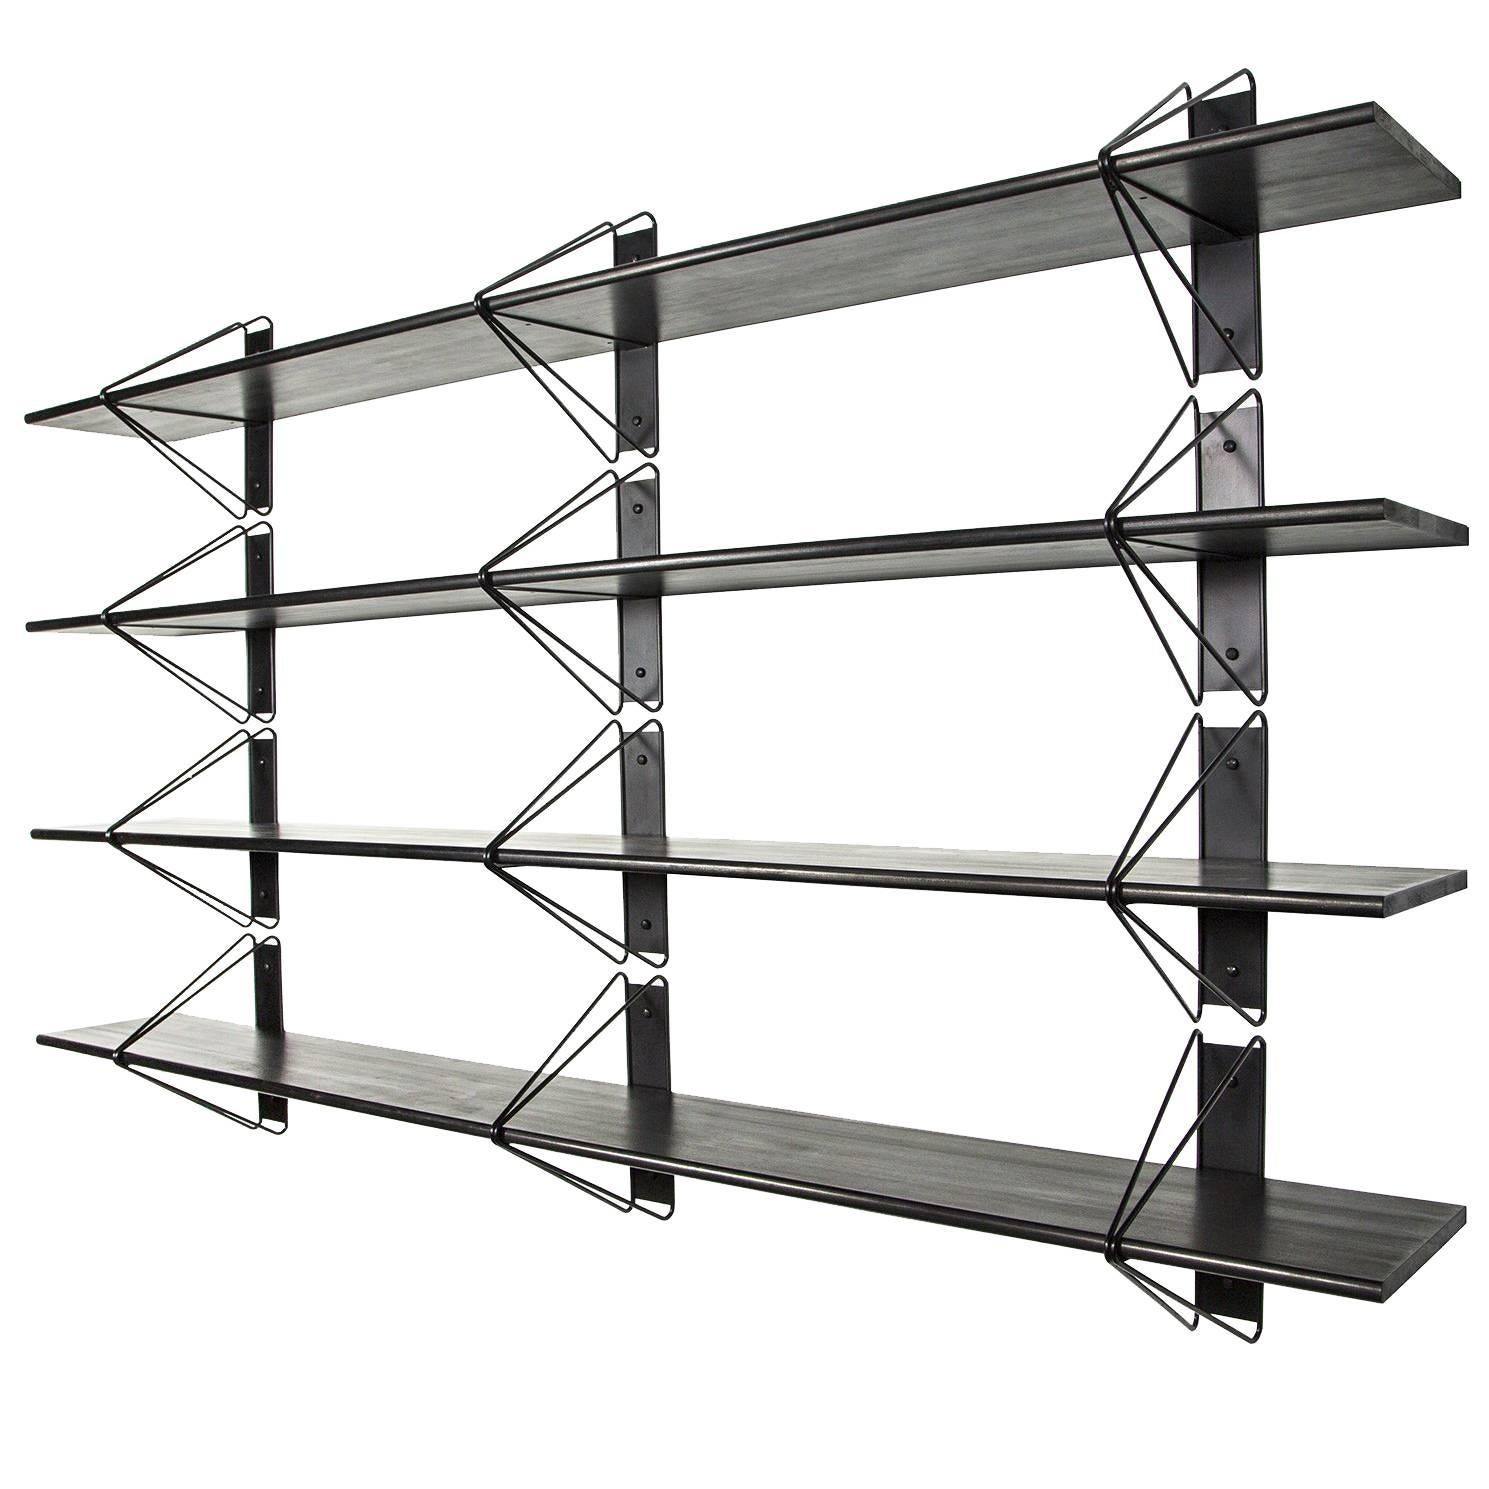 Customizable Set of 4 Strut Shelves from Souda, Black, Made to Order